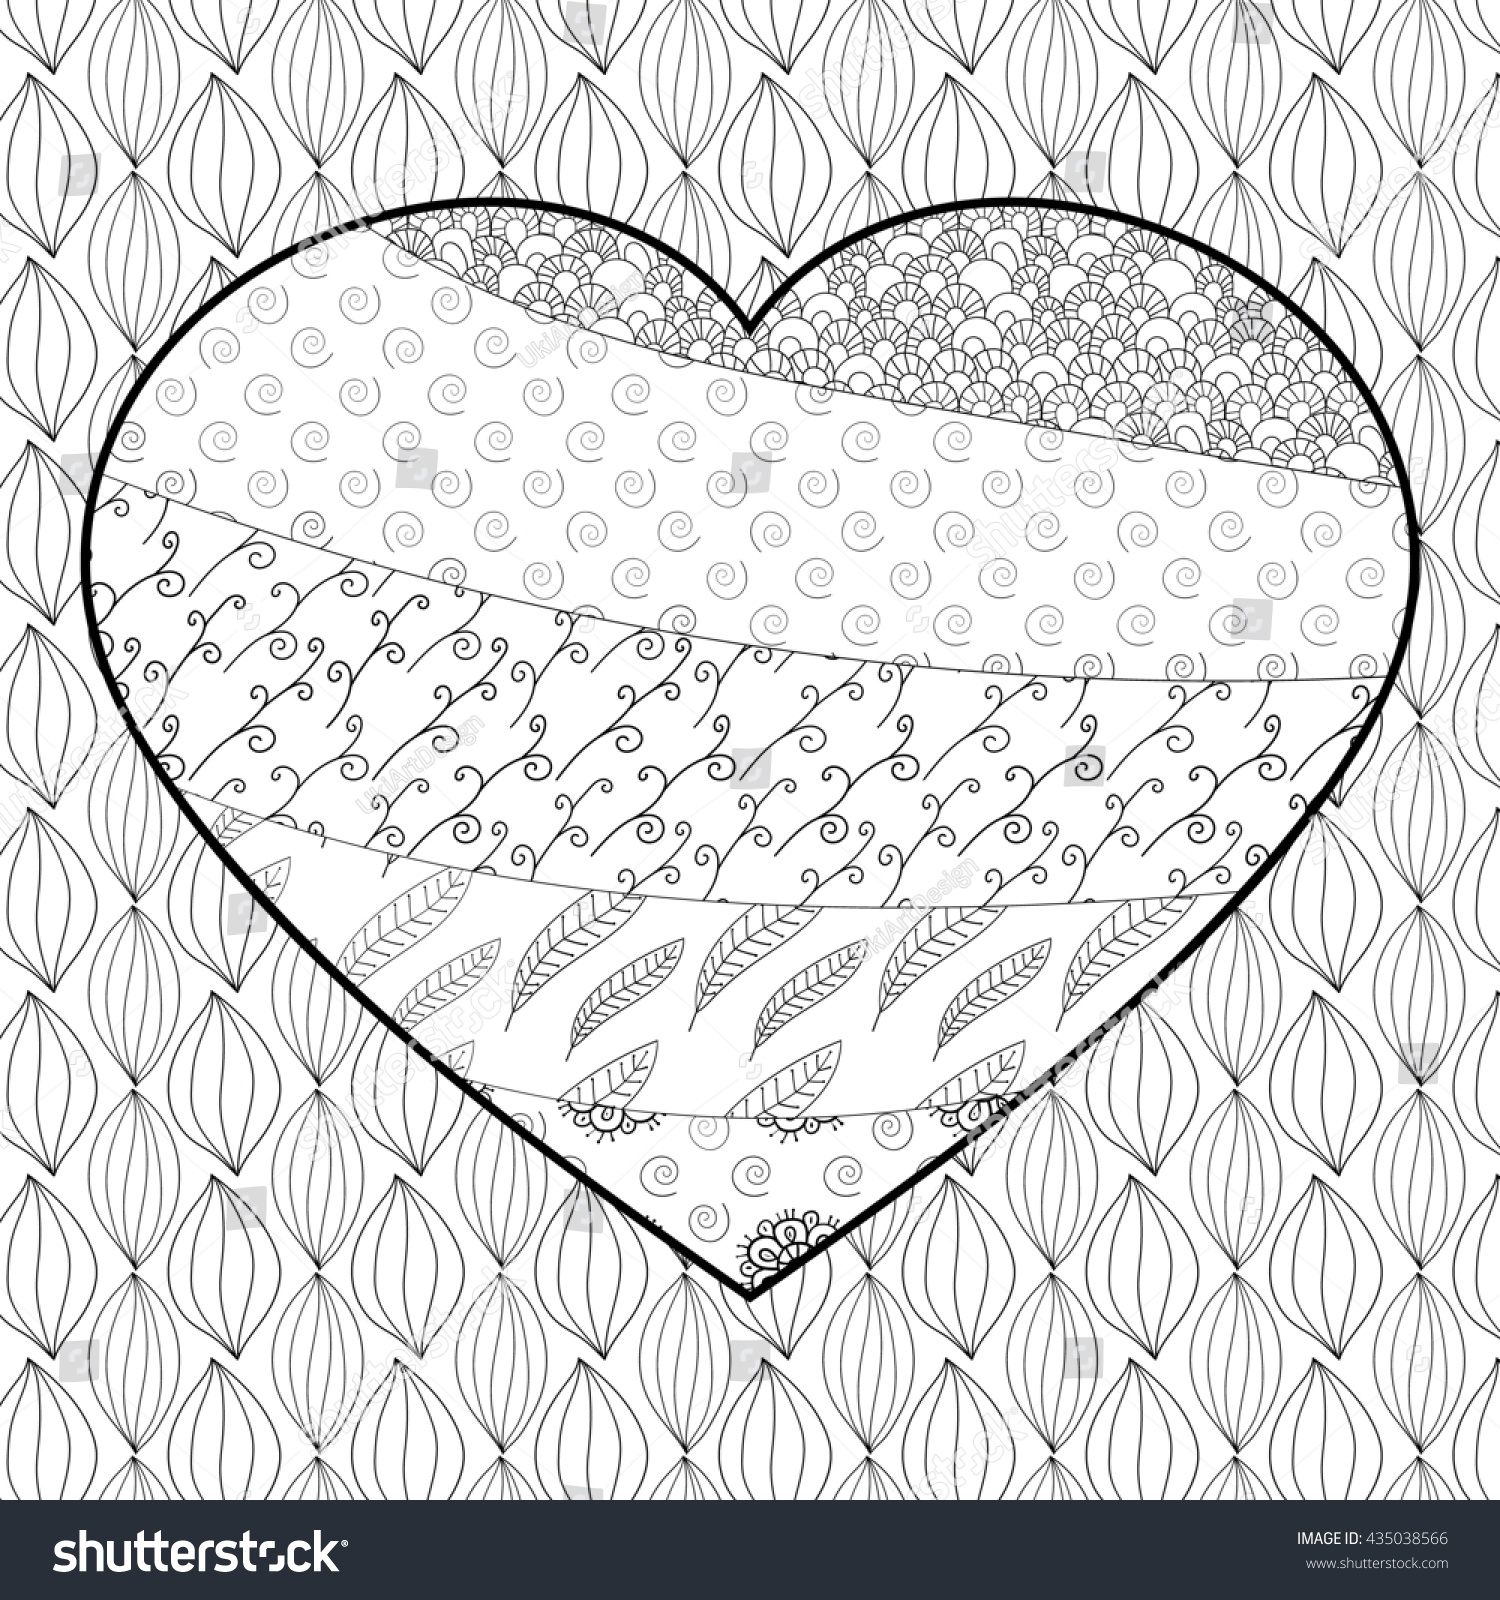 Ze zen inspiration coloring book - Heart Adult Coloring Book Page Soft Intricate Pattern Zentangle Inspired Whimsical Line Art